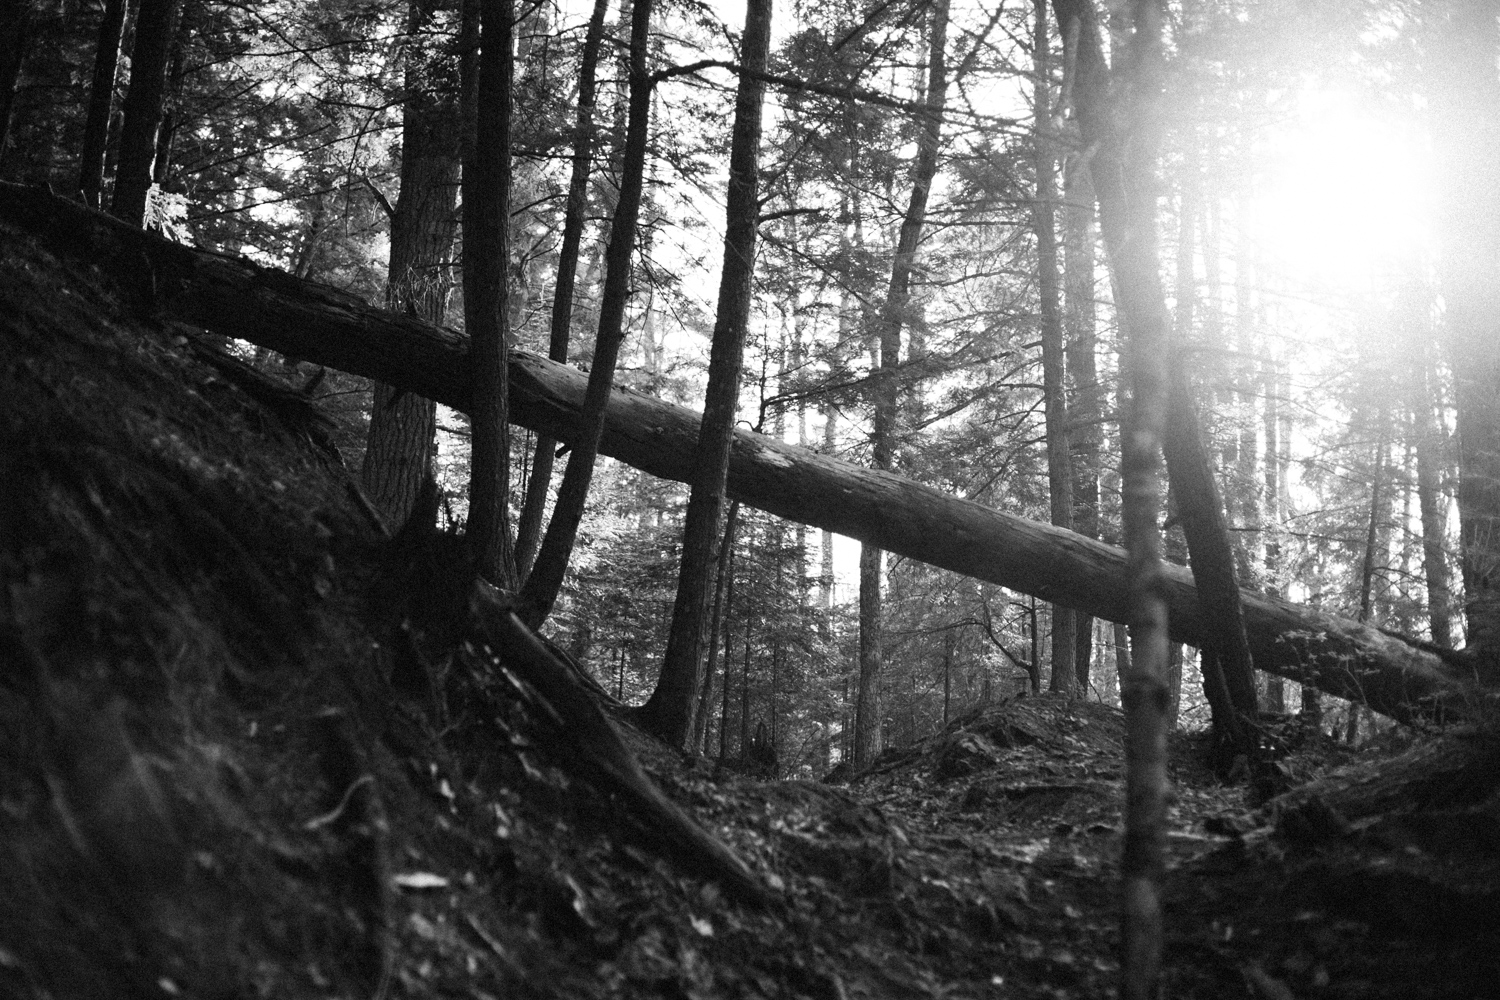 black and white photo of evening sunlight through pine trees in Michigan's upper peninsula